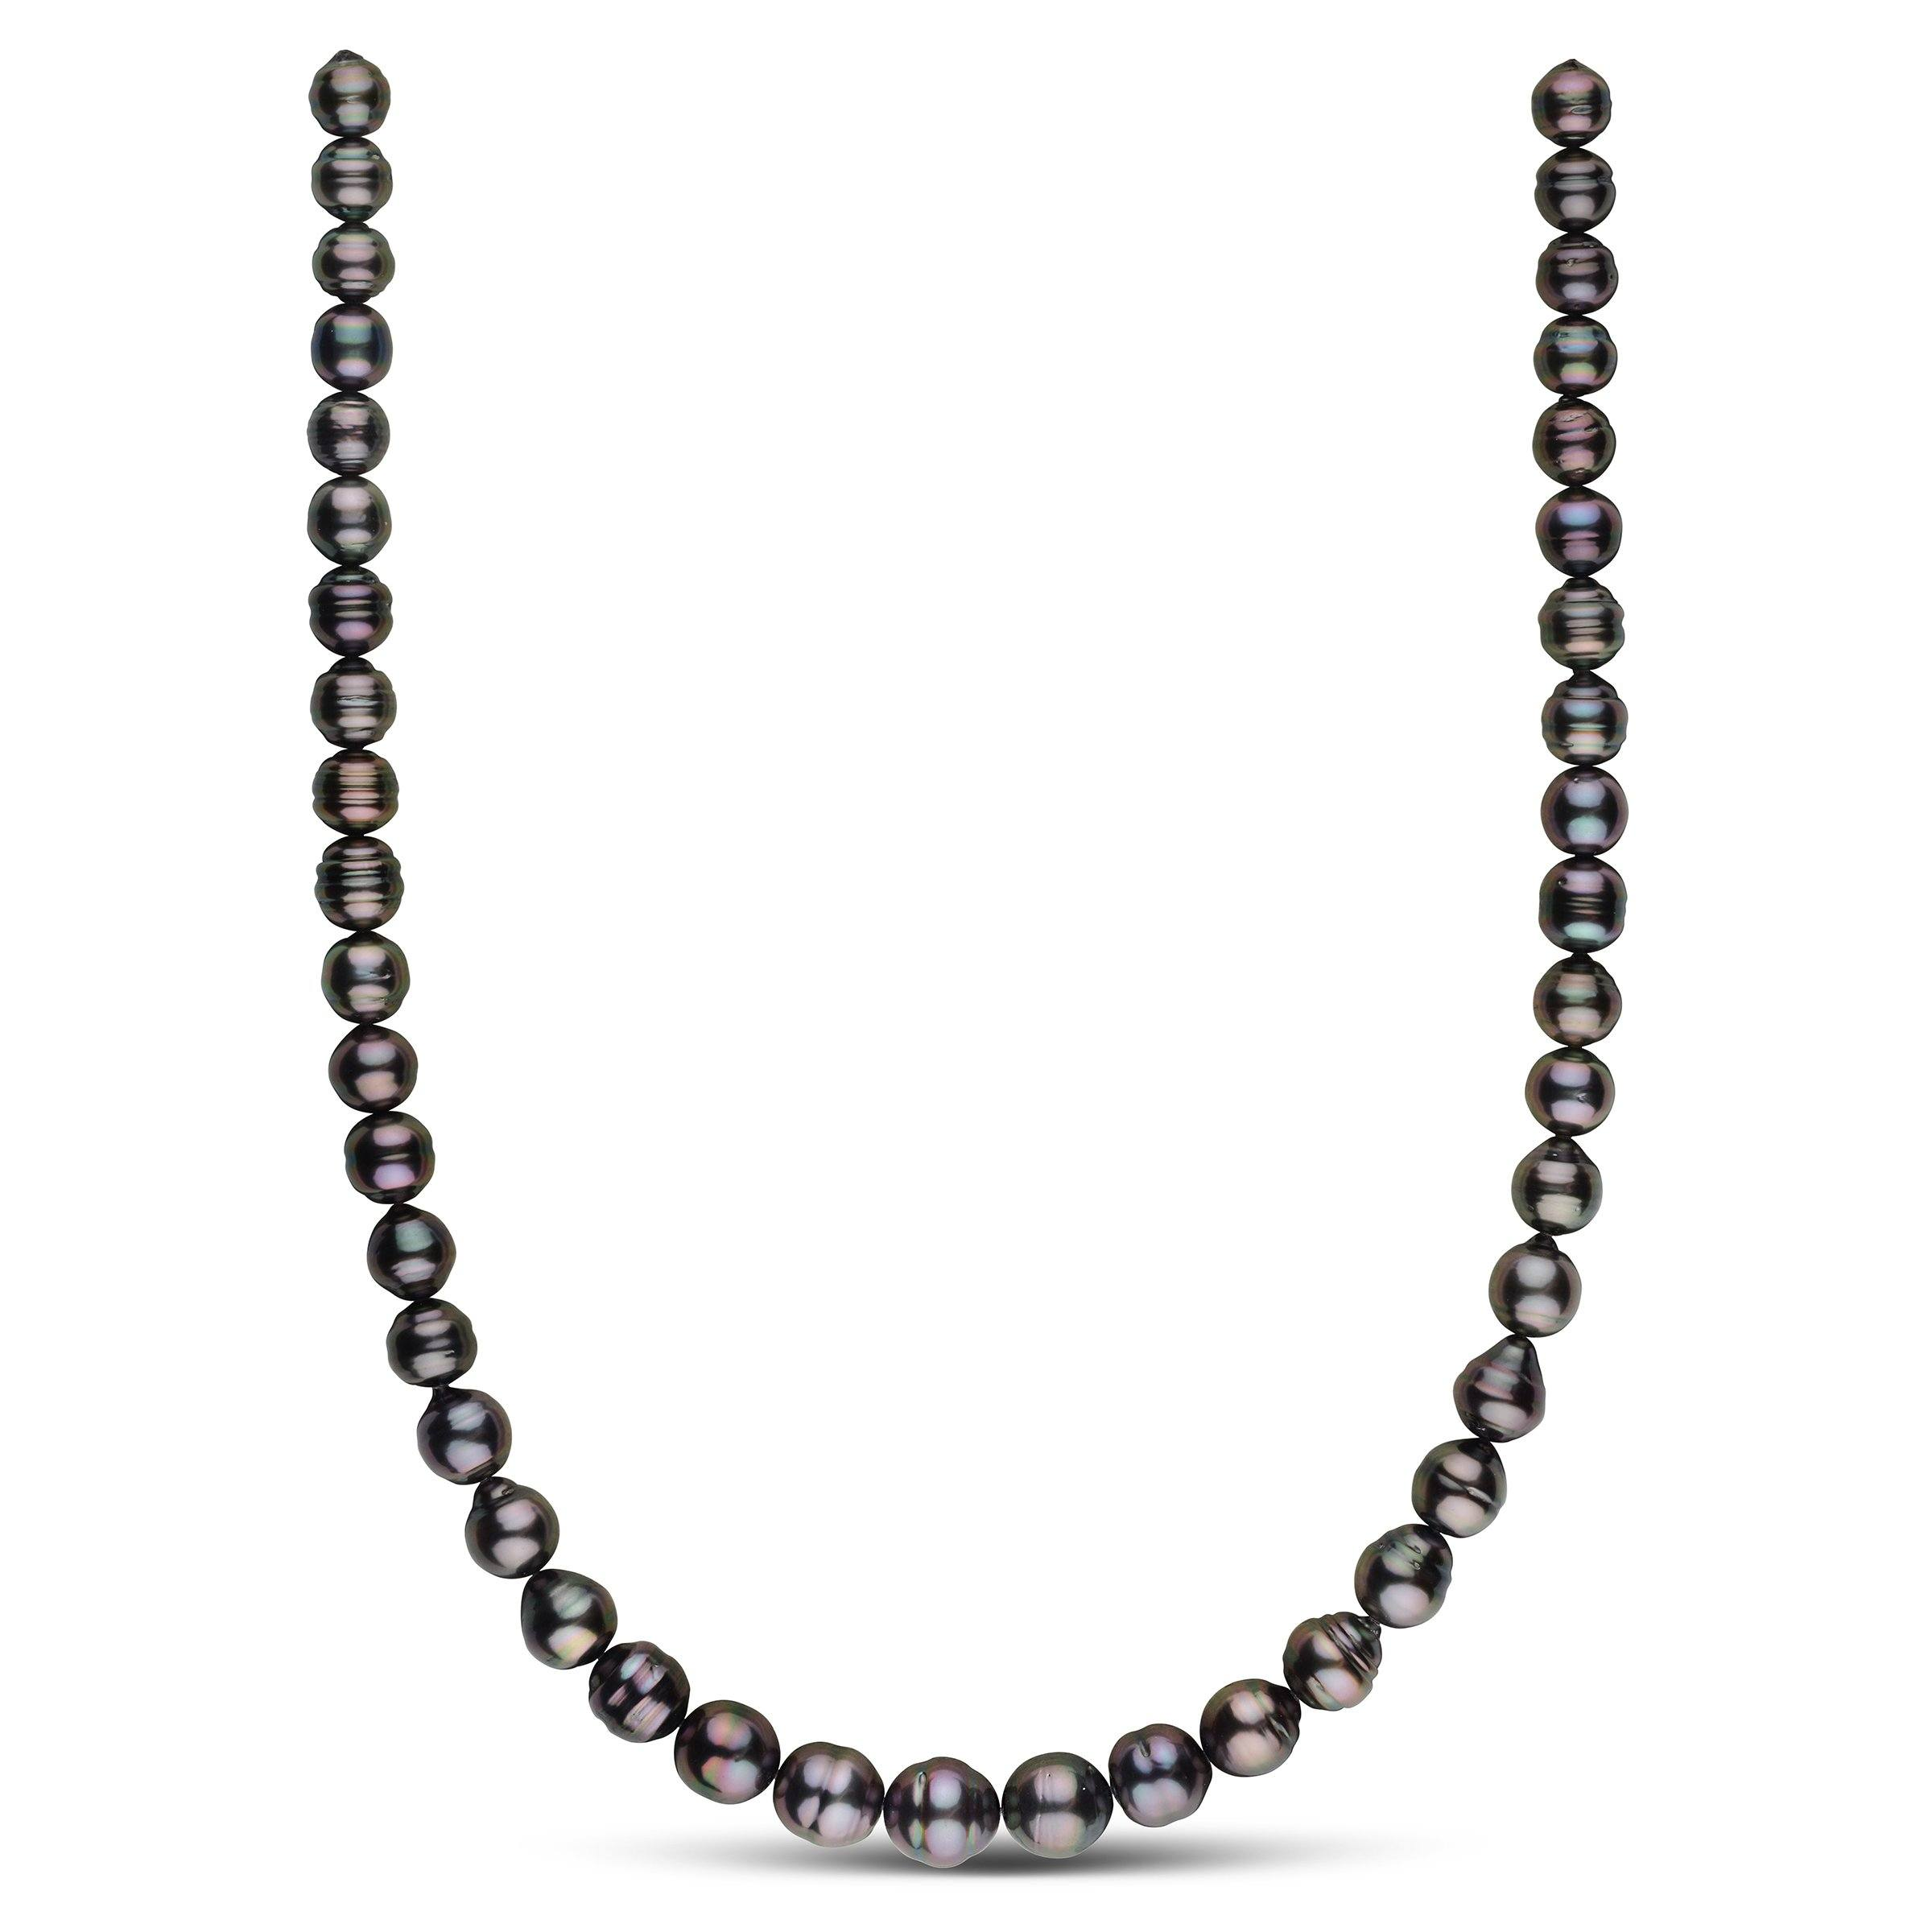 8.0-10.9 mm AA+/AAA Tahitian Baroque Pearl Necklace